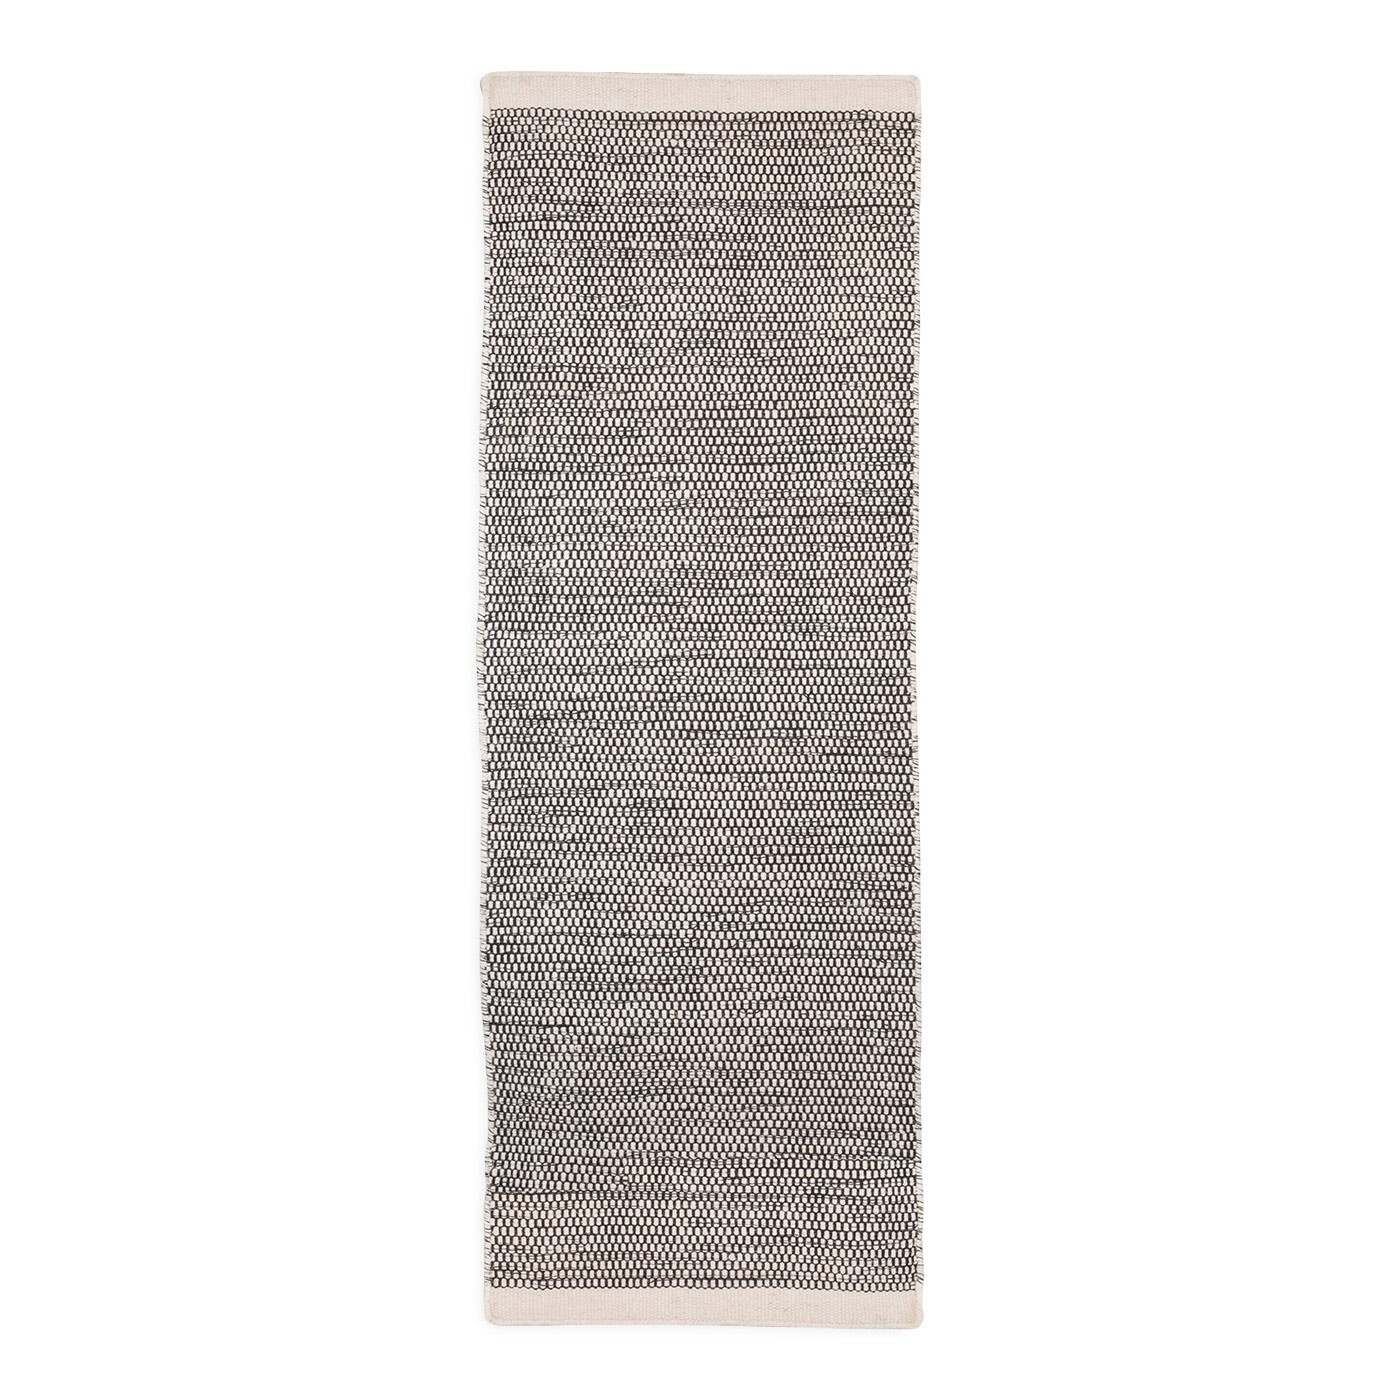 Asko Runner Rug Light Grey Natural Throughout Rug Runners Grey (#1 of 20)